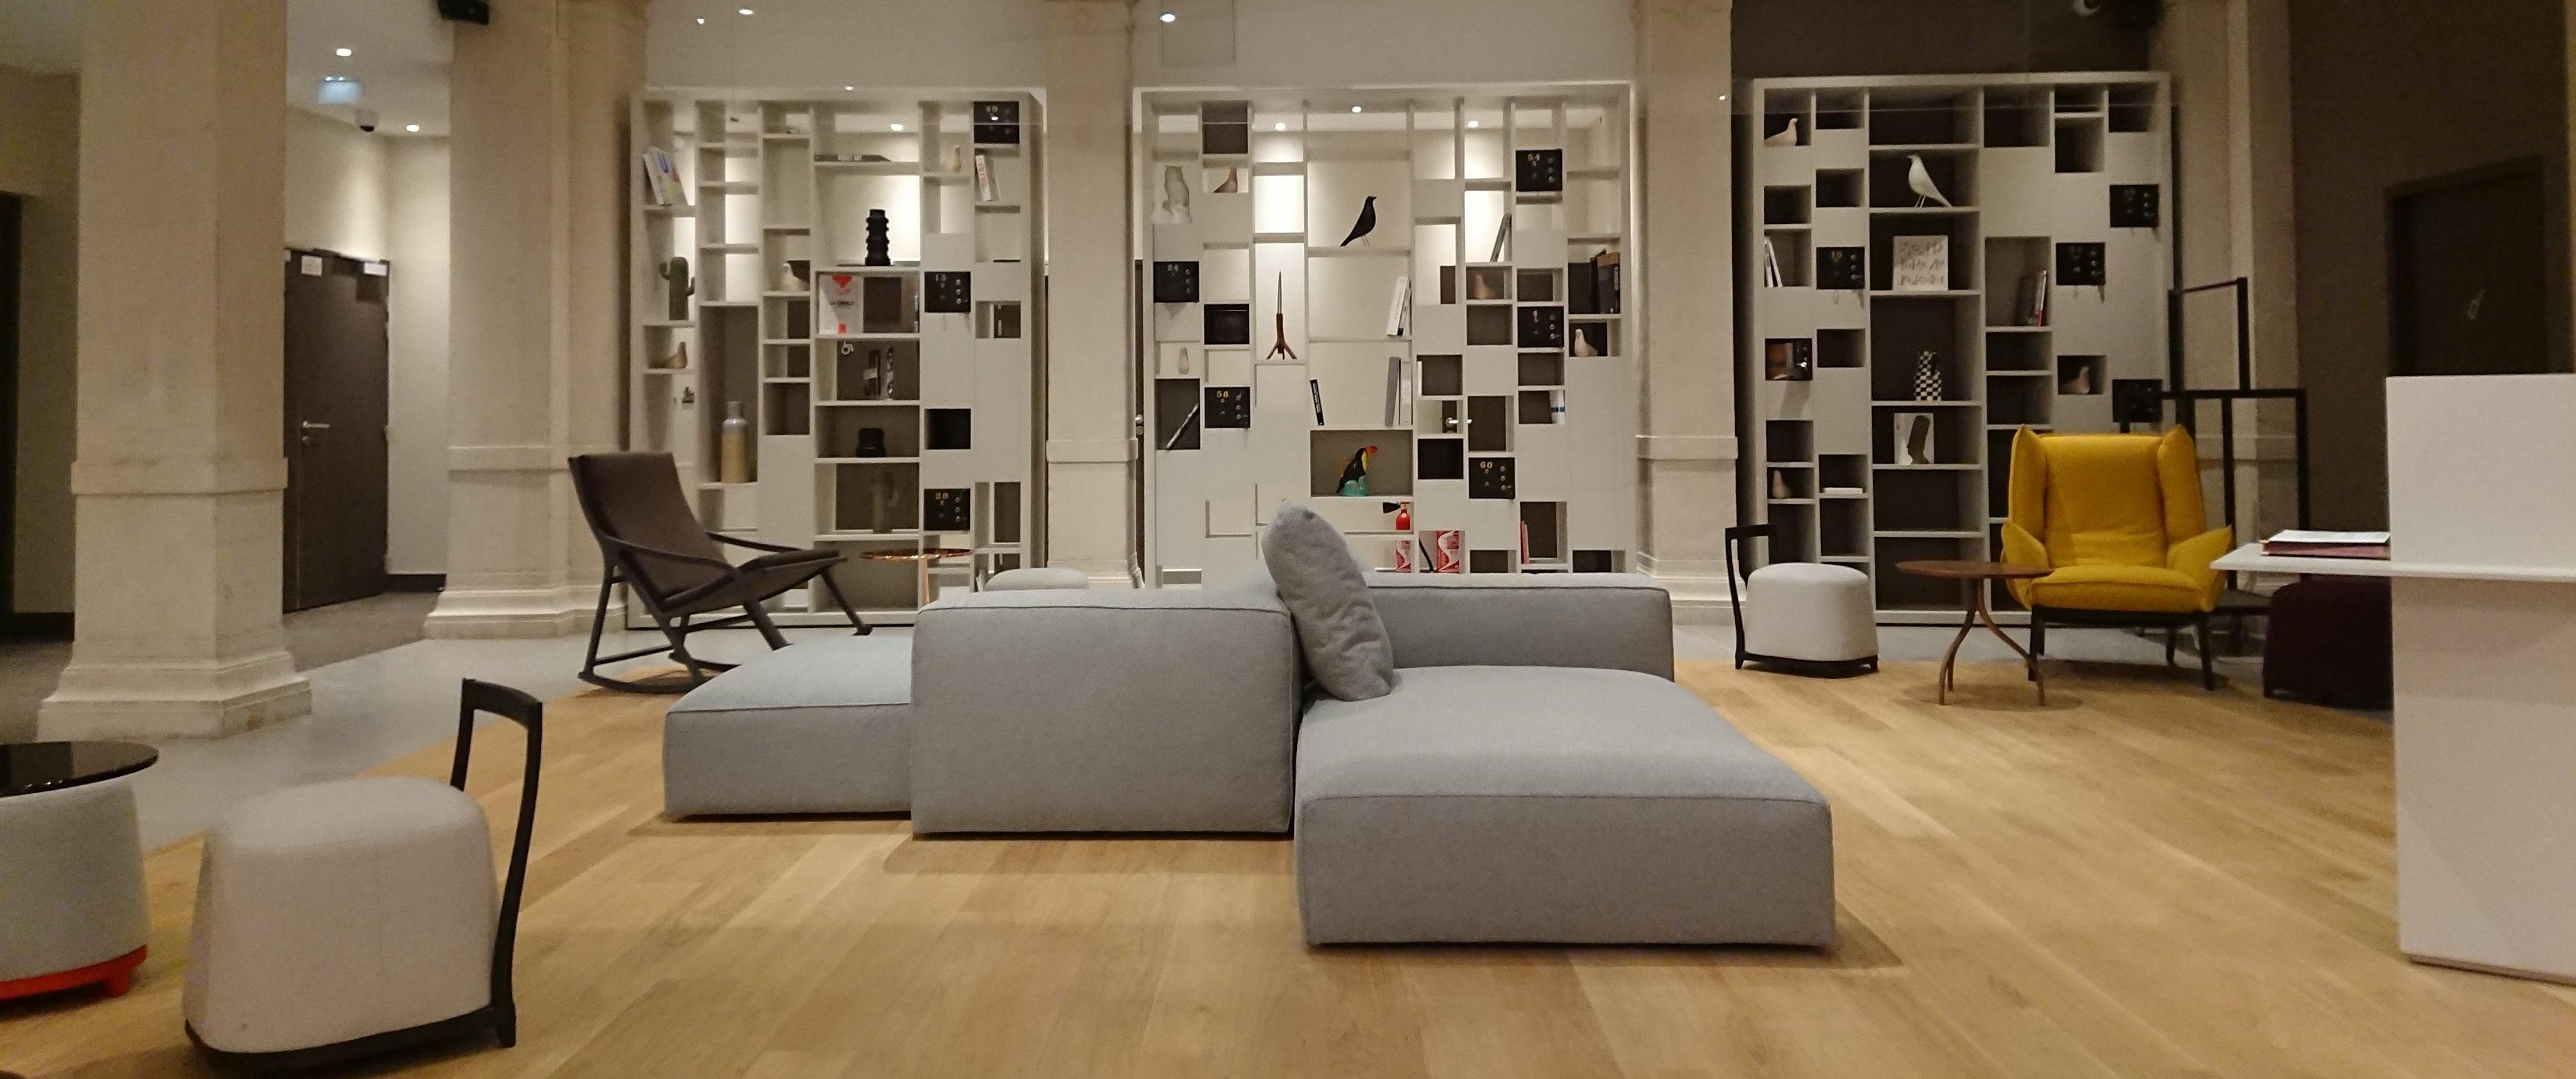 Contract project - Maison Nô Ligne Roset